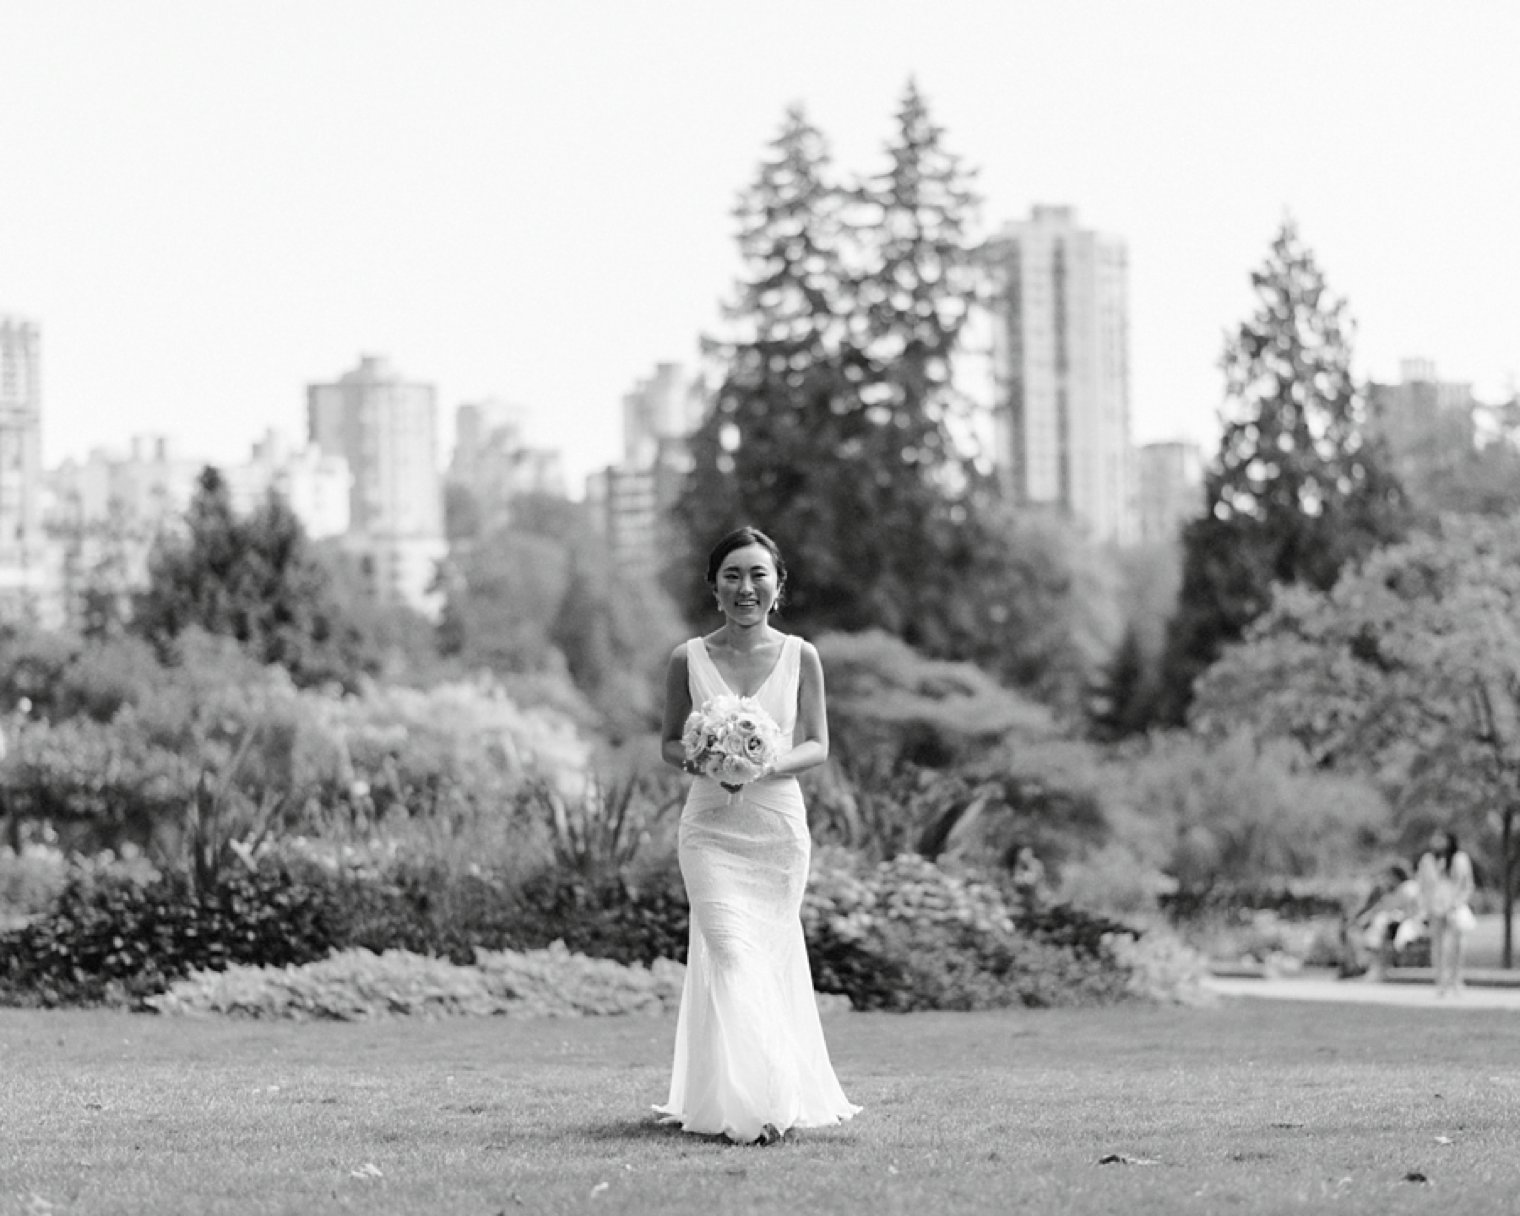 stanley park wedding ceremony